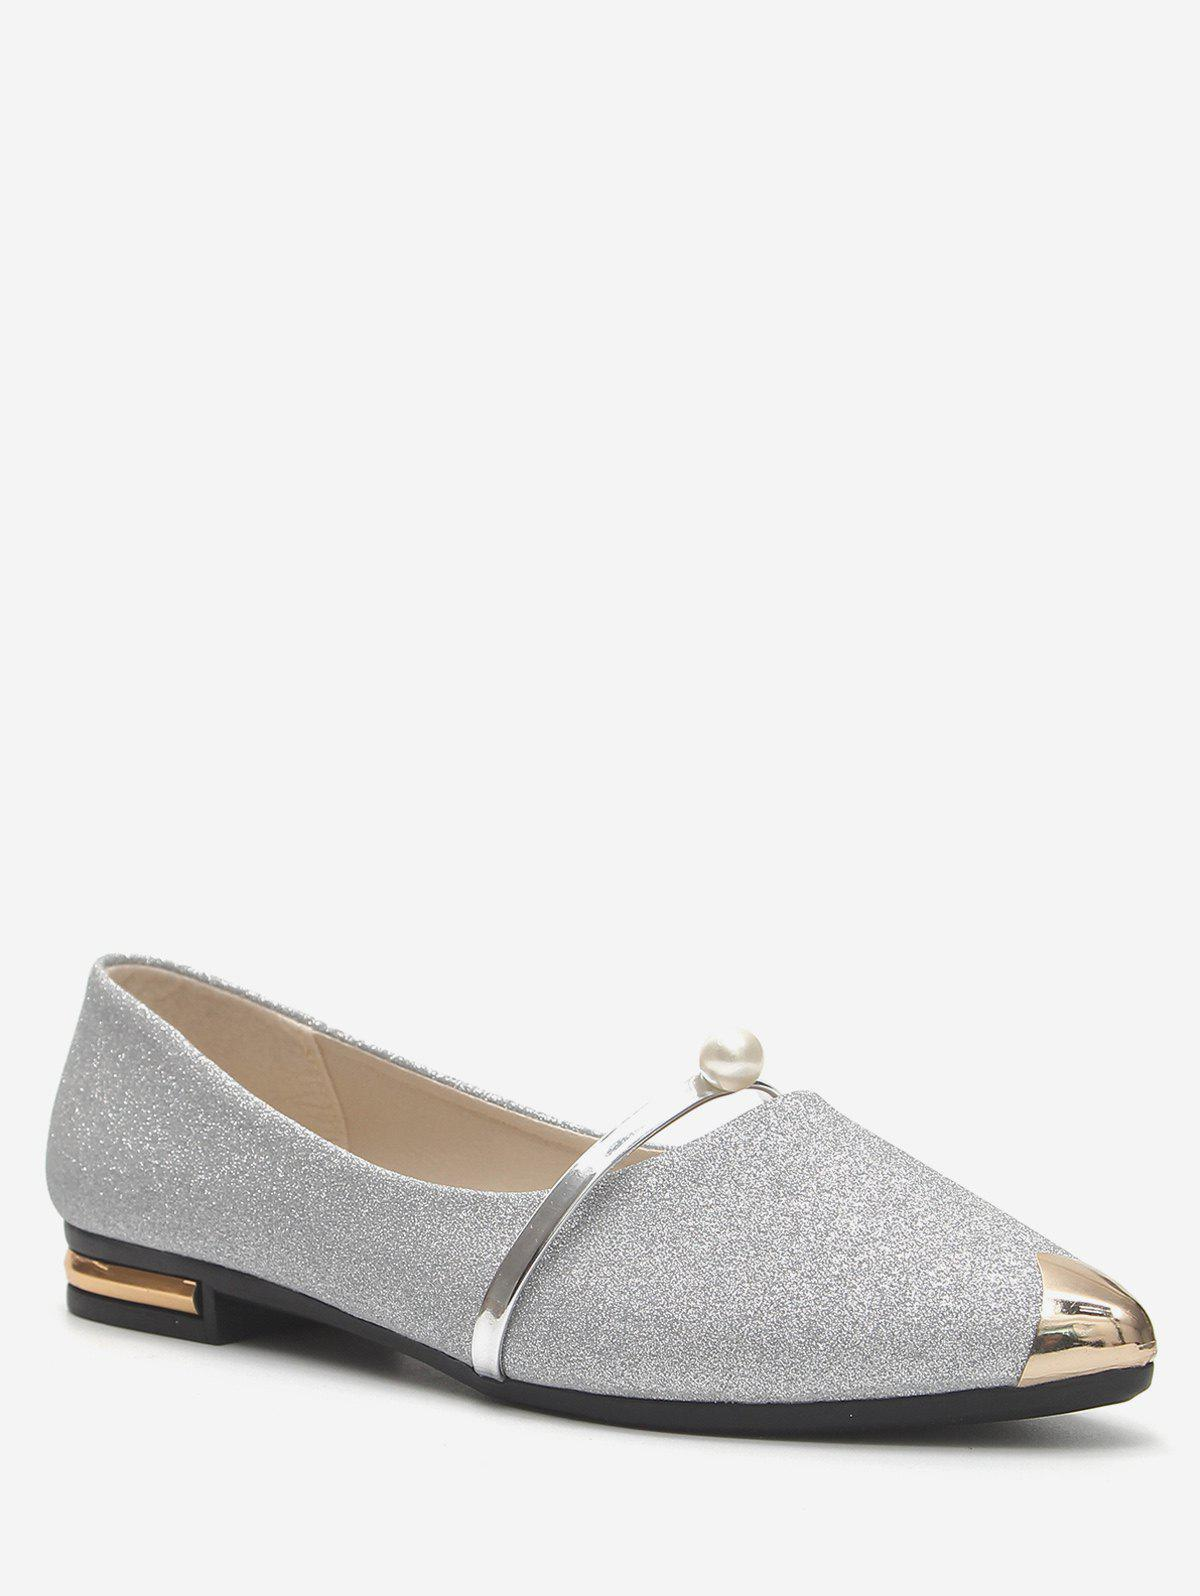 Fancy Shiny Pointed Toe Flats